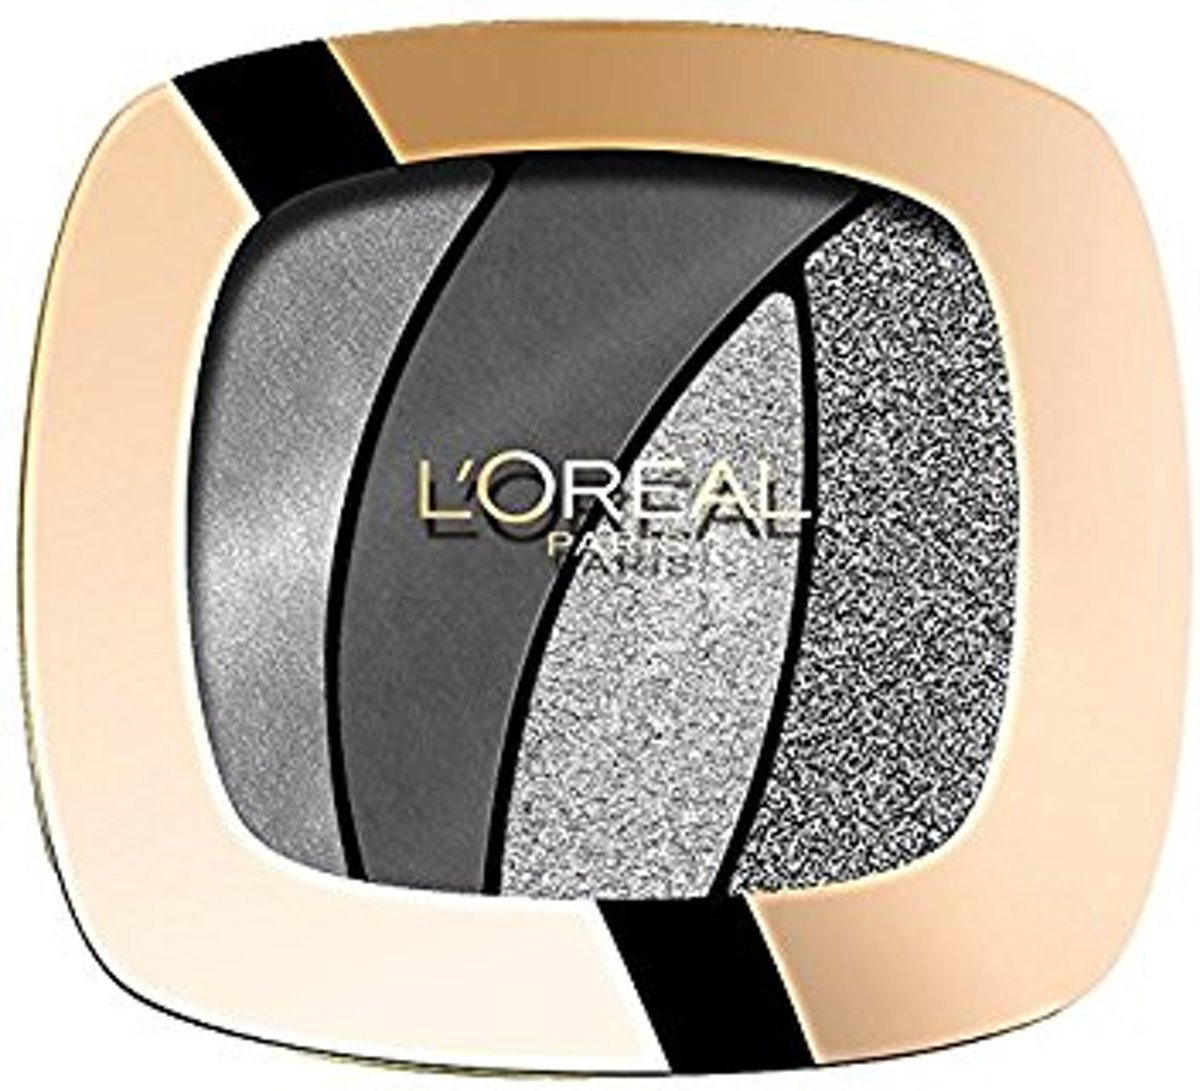 Loreal Paris Color Riche Quad Oogschaduw - S11 Fascinating Silver